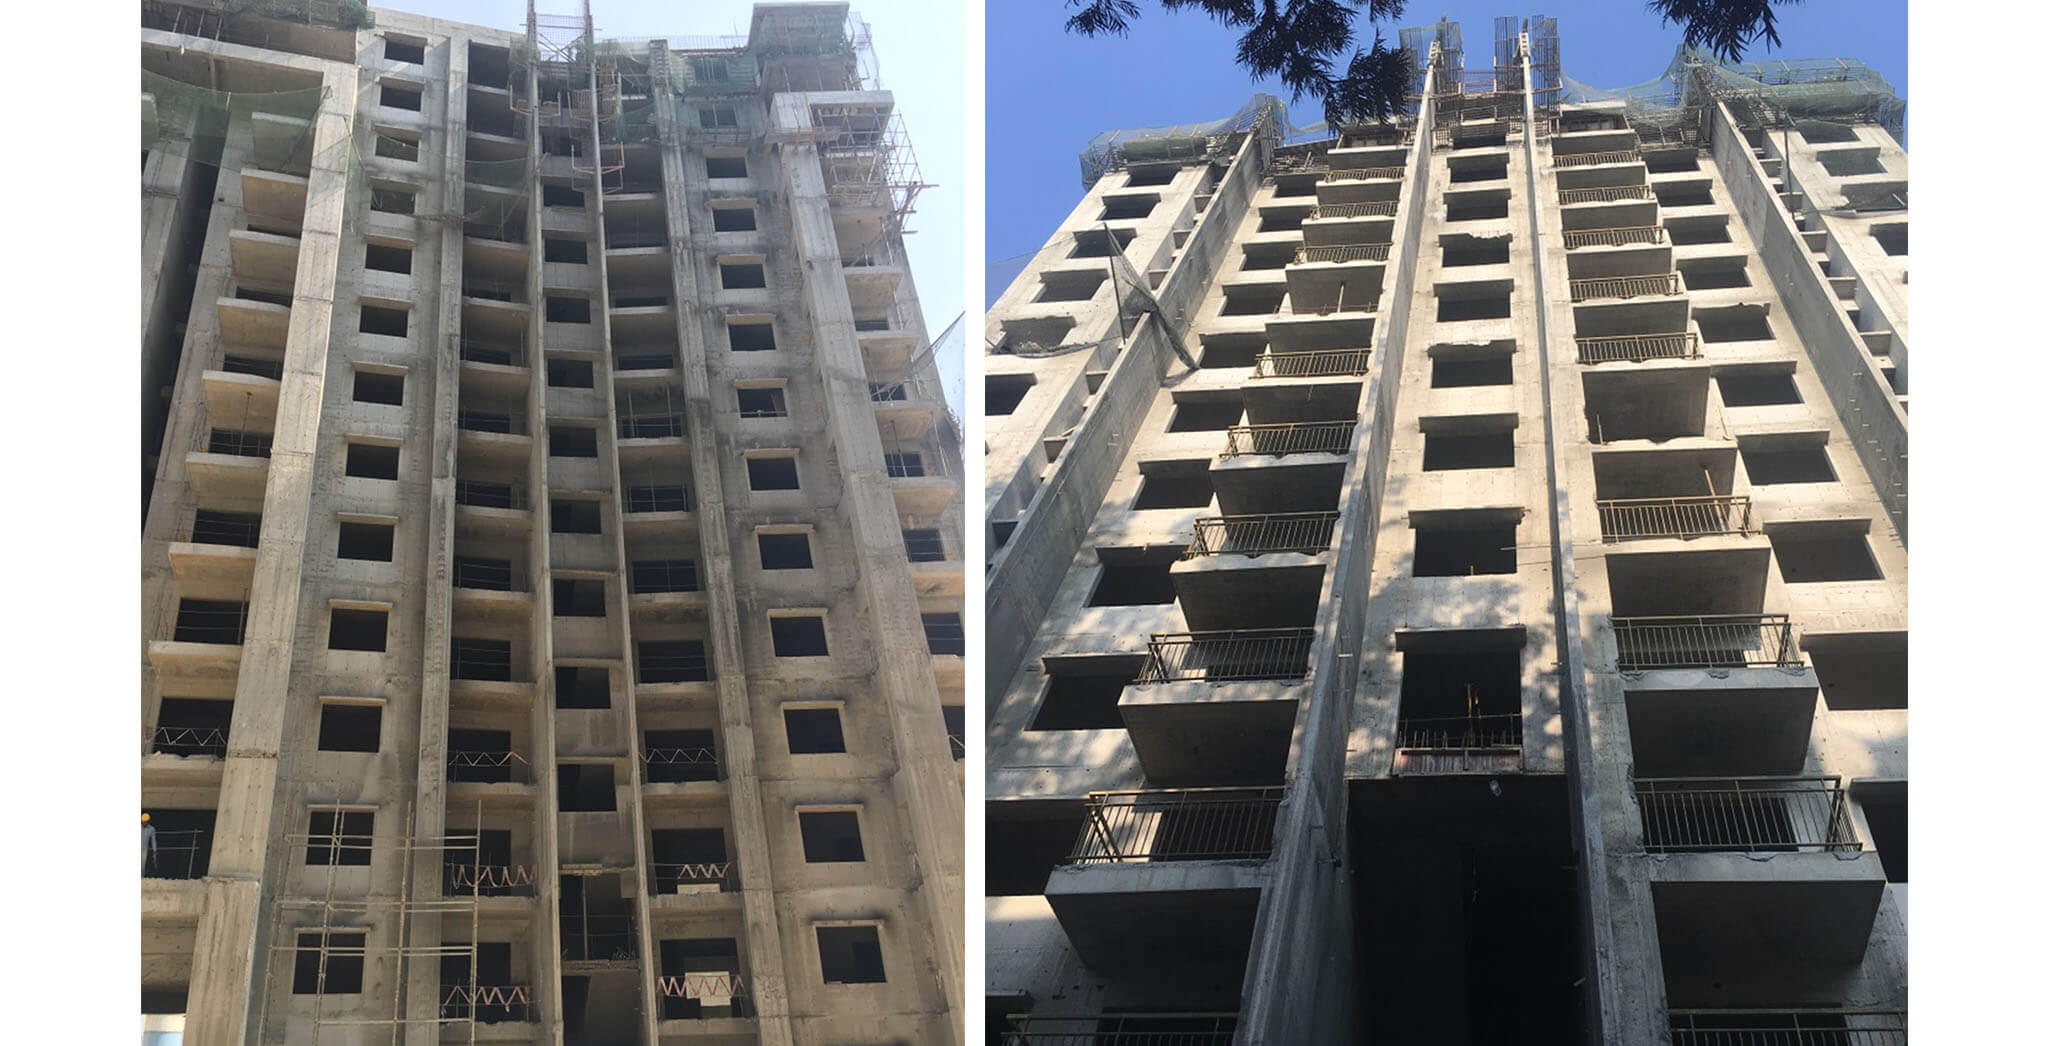 Crimson Block, O wing: 2 BHK and 3 BHK—above terrace work-in-progress